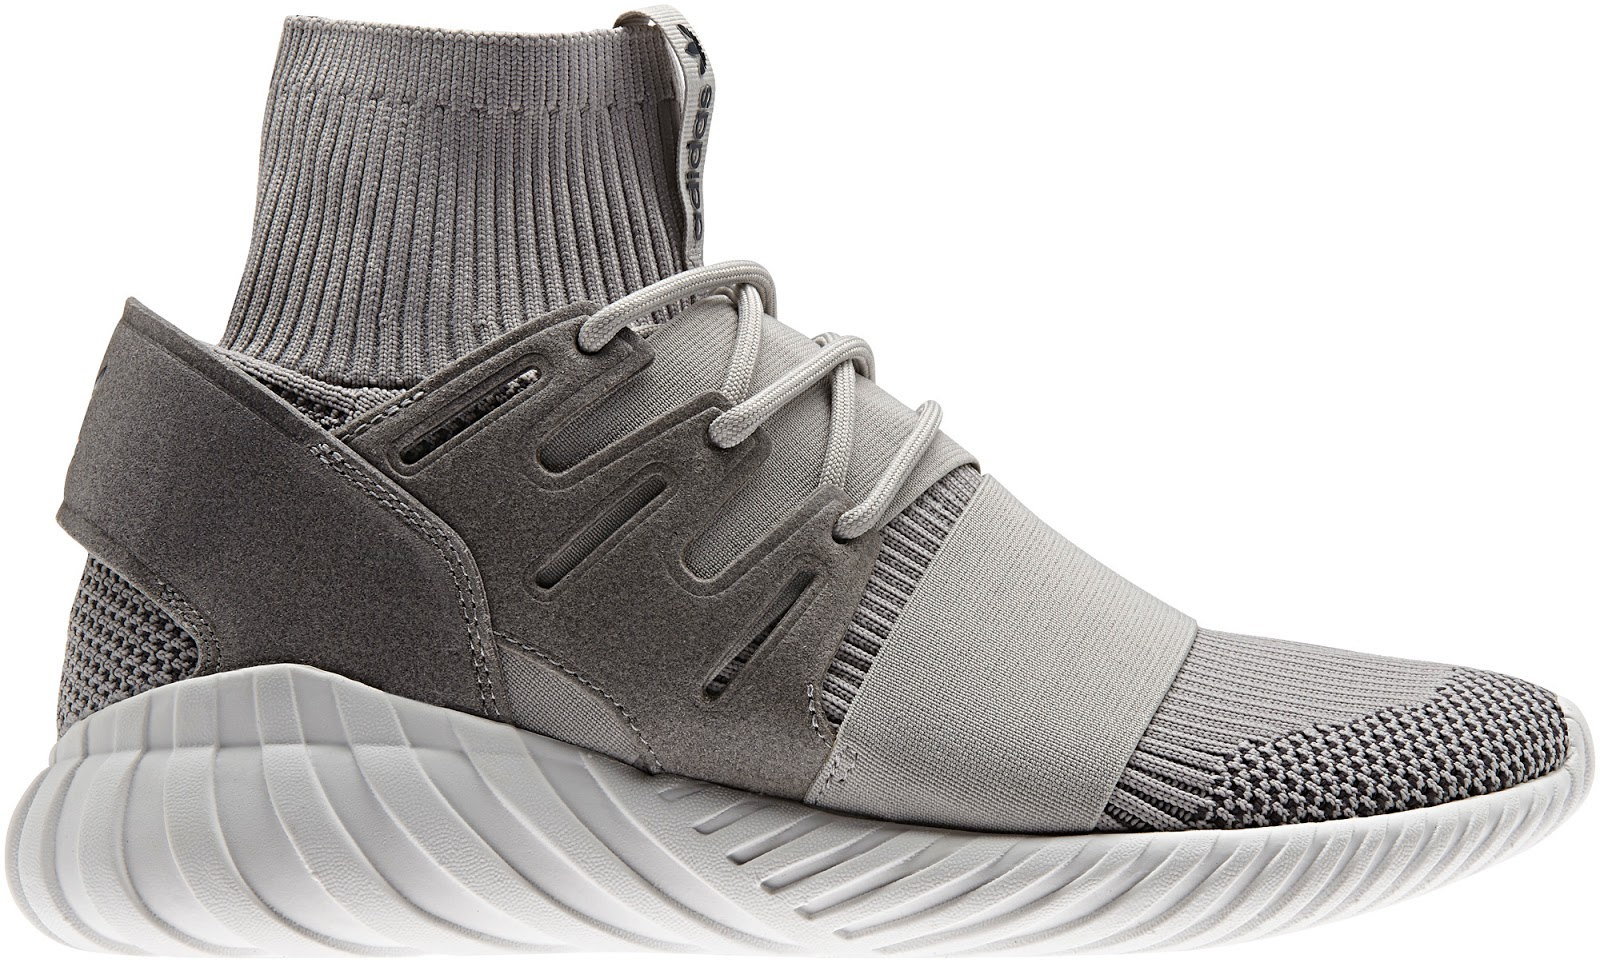 b71dbaad086a7d The adidas Originals Tubular Doom Primeknit will be available from Friday